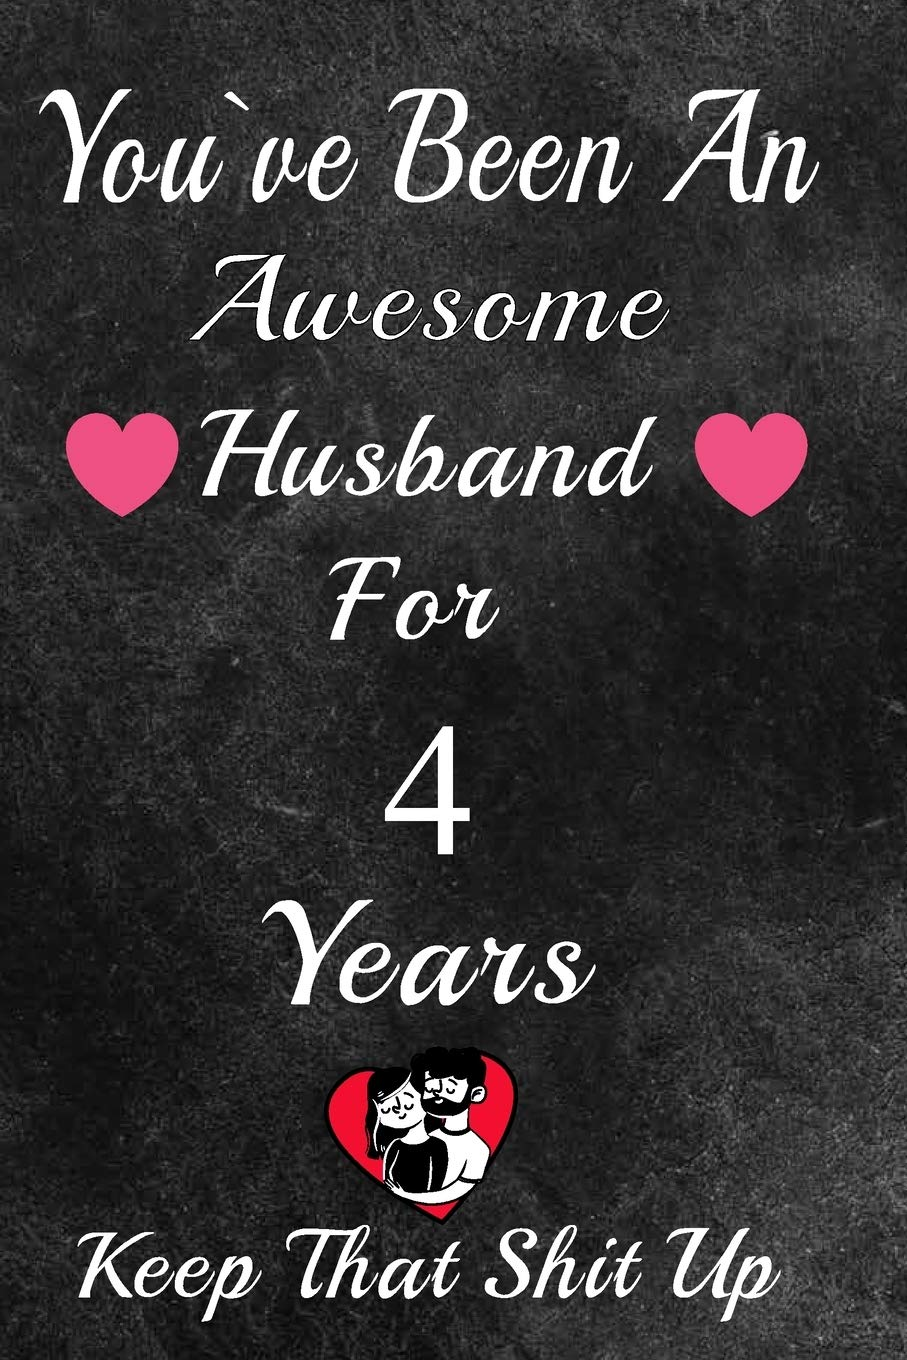 You Ve Been An Awesome Husband For 4 Years Keep That Shit Up 4th Anniversary Gift For Husband 4 Year Wedding Anniversary Gift For Men 4 Year Anniversary Gift For Him Publishing Gift